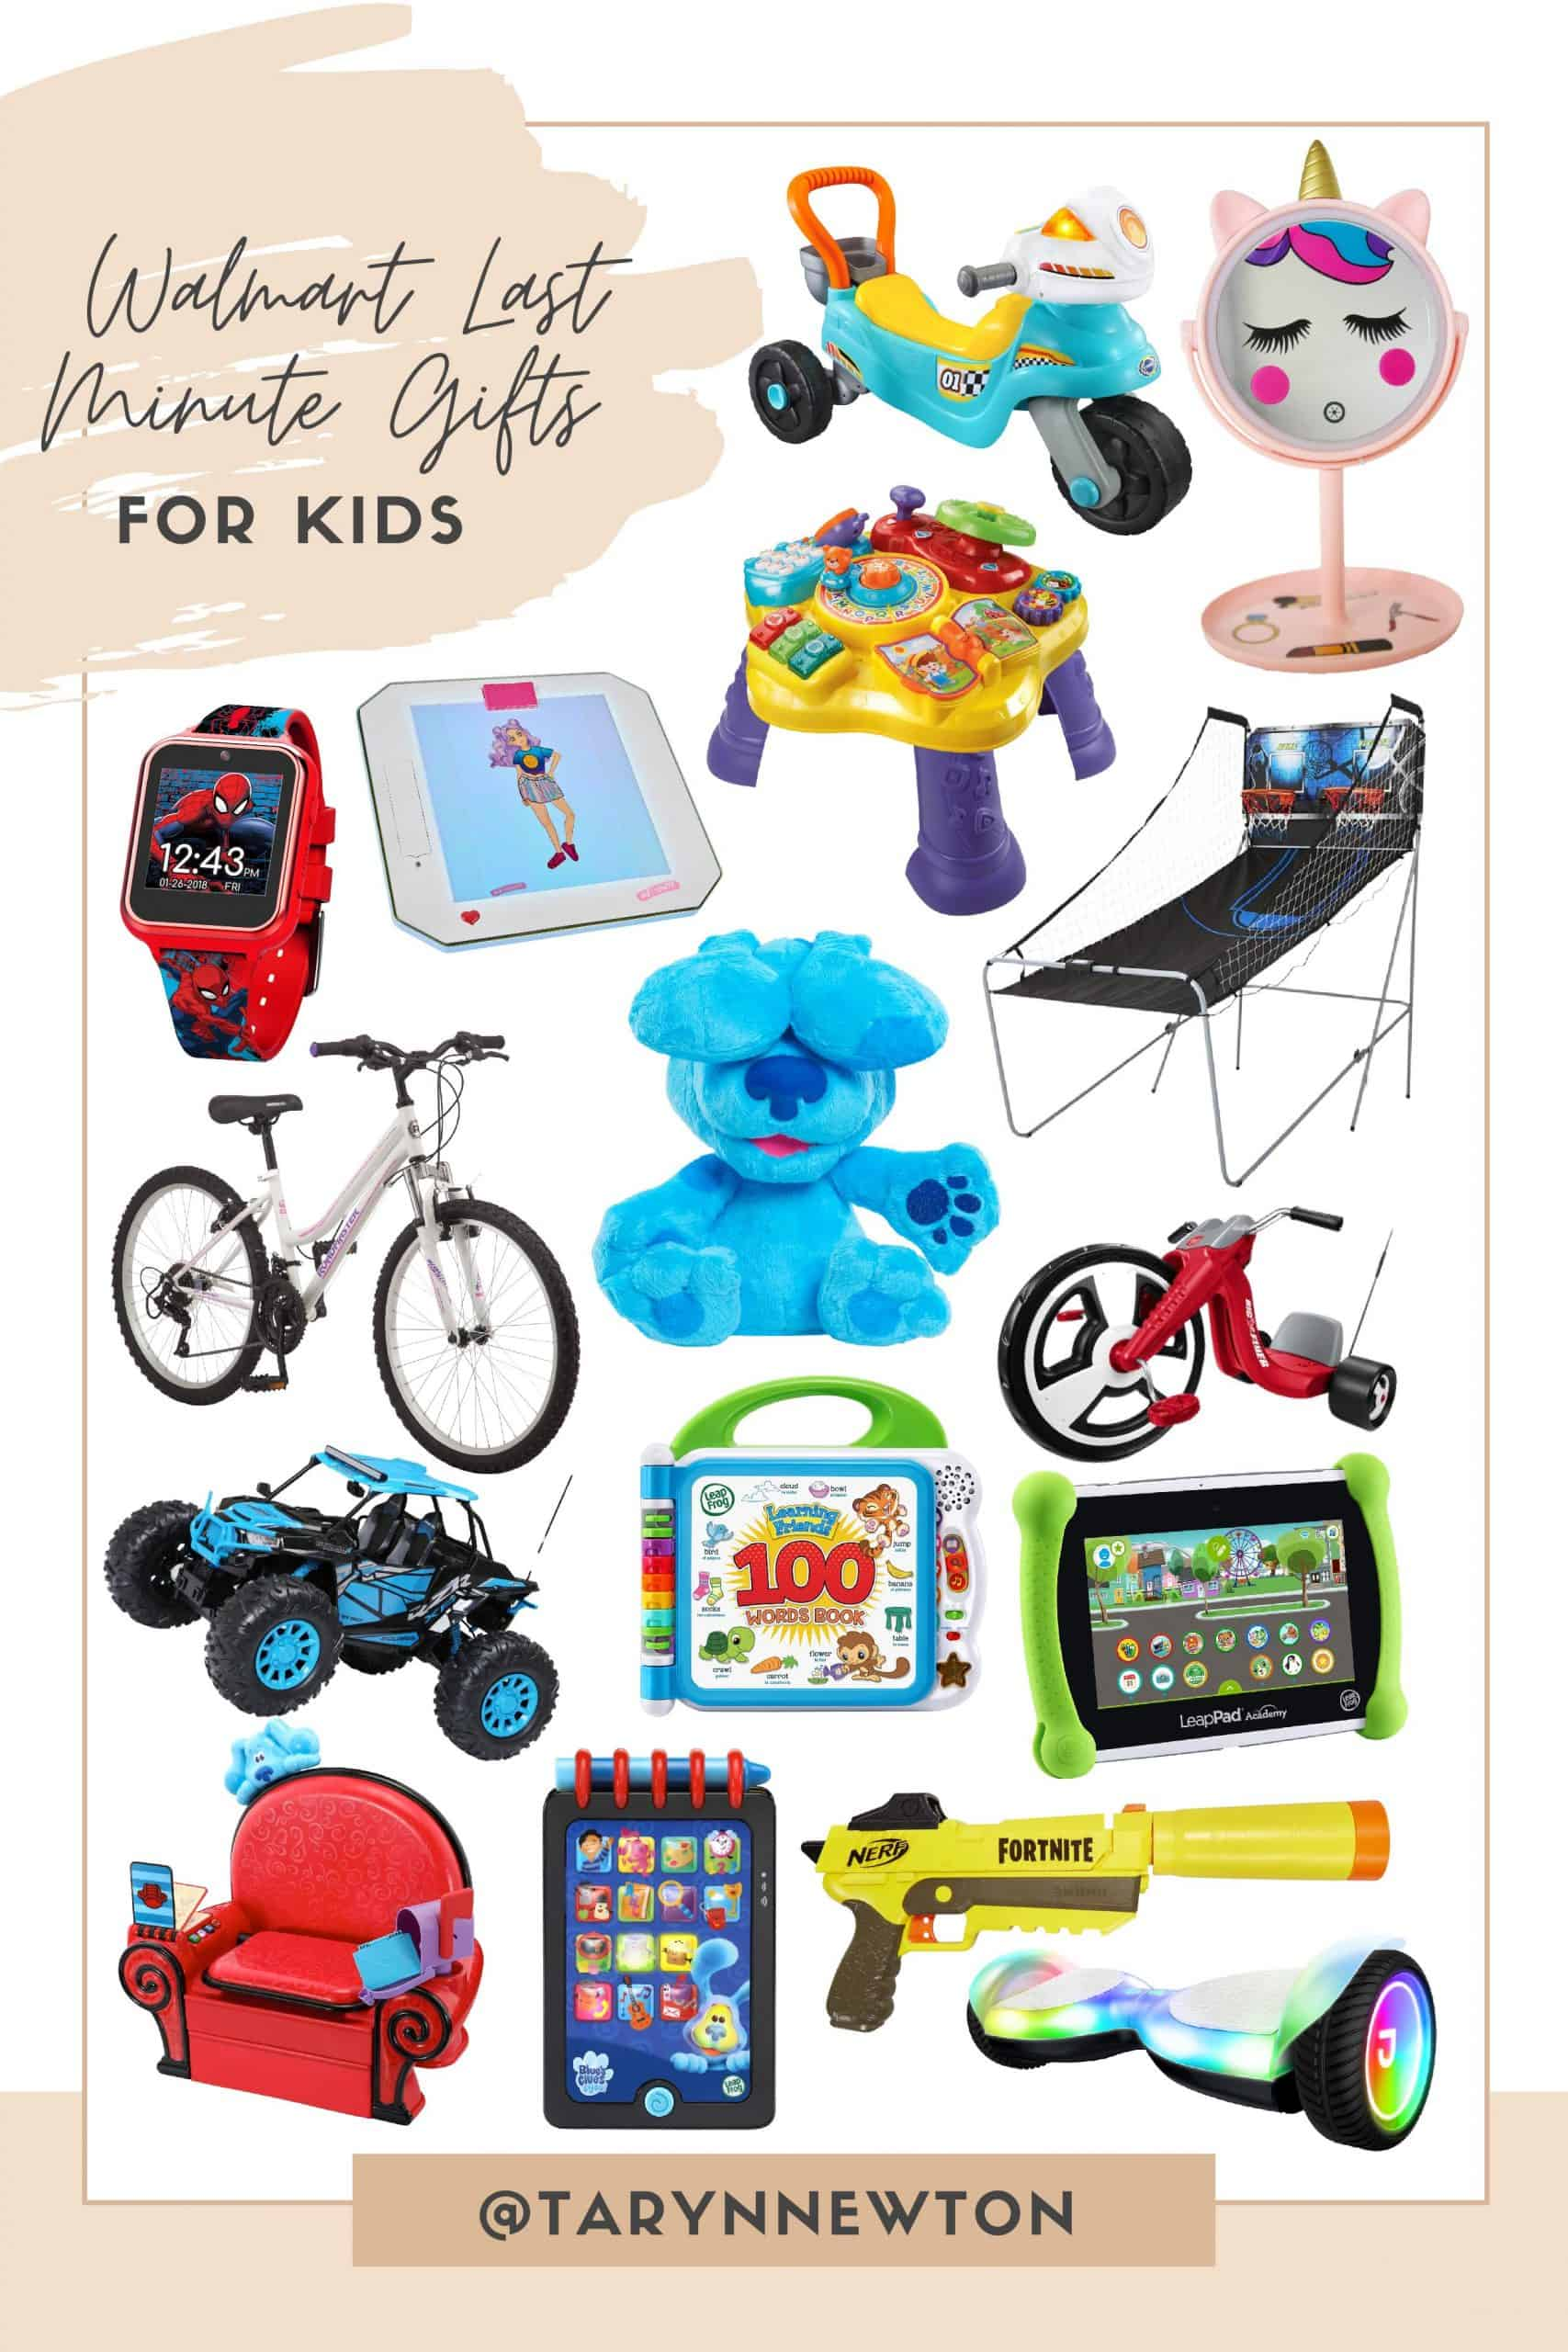 Last Minute Gift Ideas by popular Dallas life and style blog, Glamorous Versatility: collage image of a remote control car, smart watch, blues clues dog, white bike, fortnite nerf gun, hover board, unicorn mirror, basketball hoops and radio flyer bike.